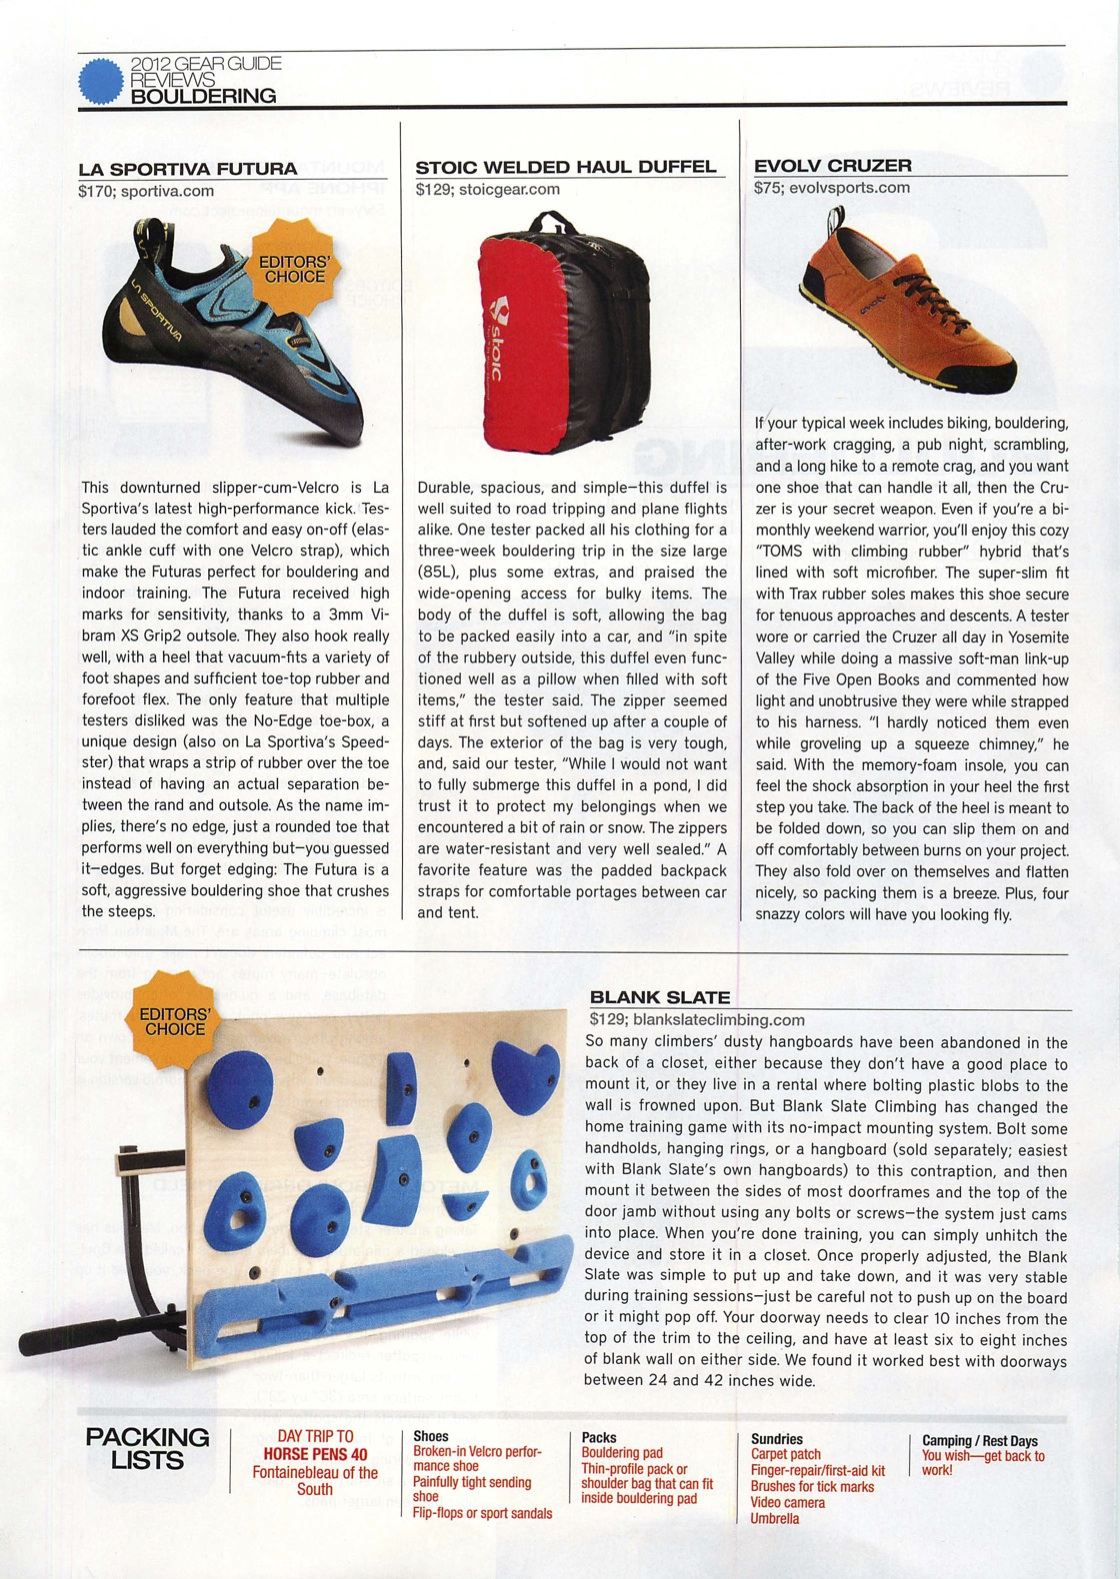 Climbing Magazine presented its coveted Editors' Choice award to the La Sportiva Futura in the 2012 Gear Guide